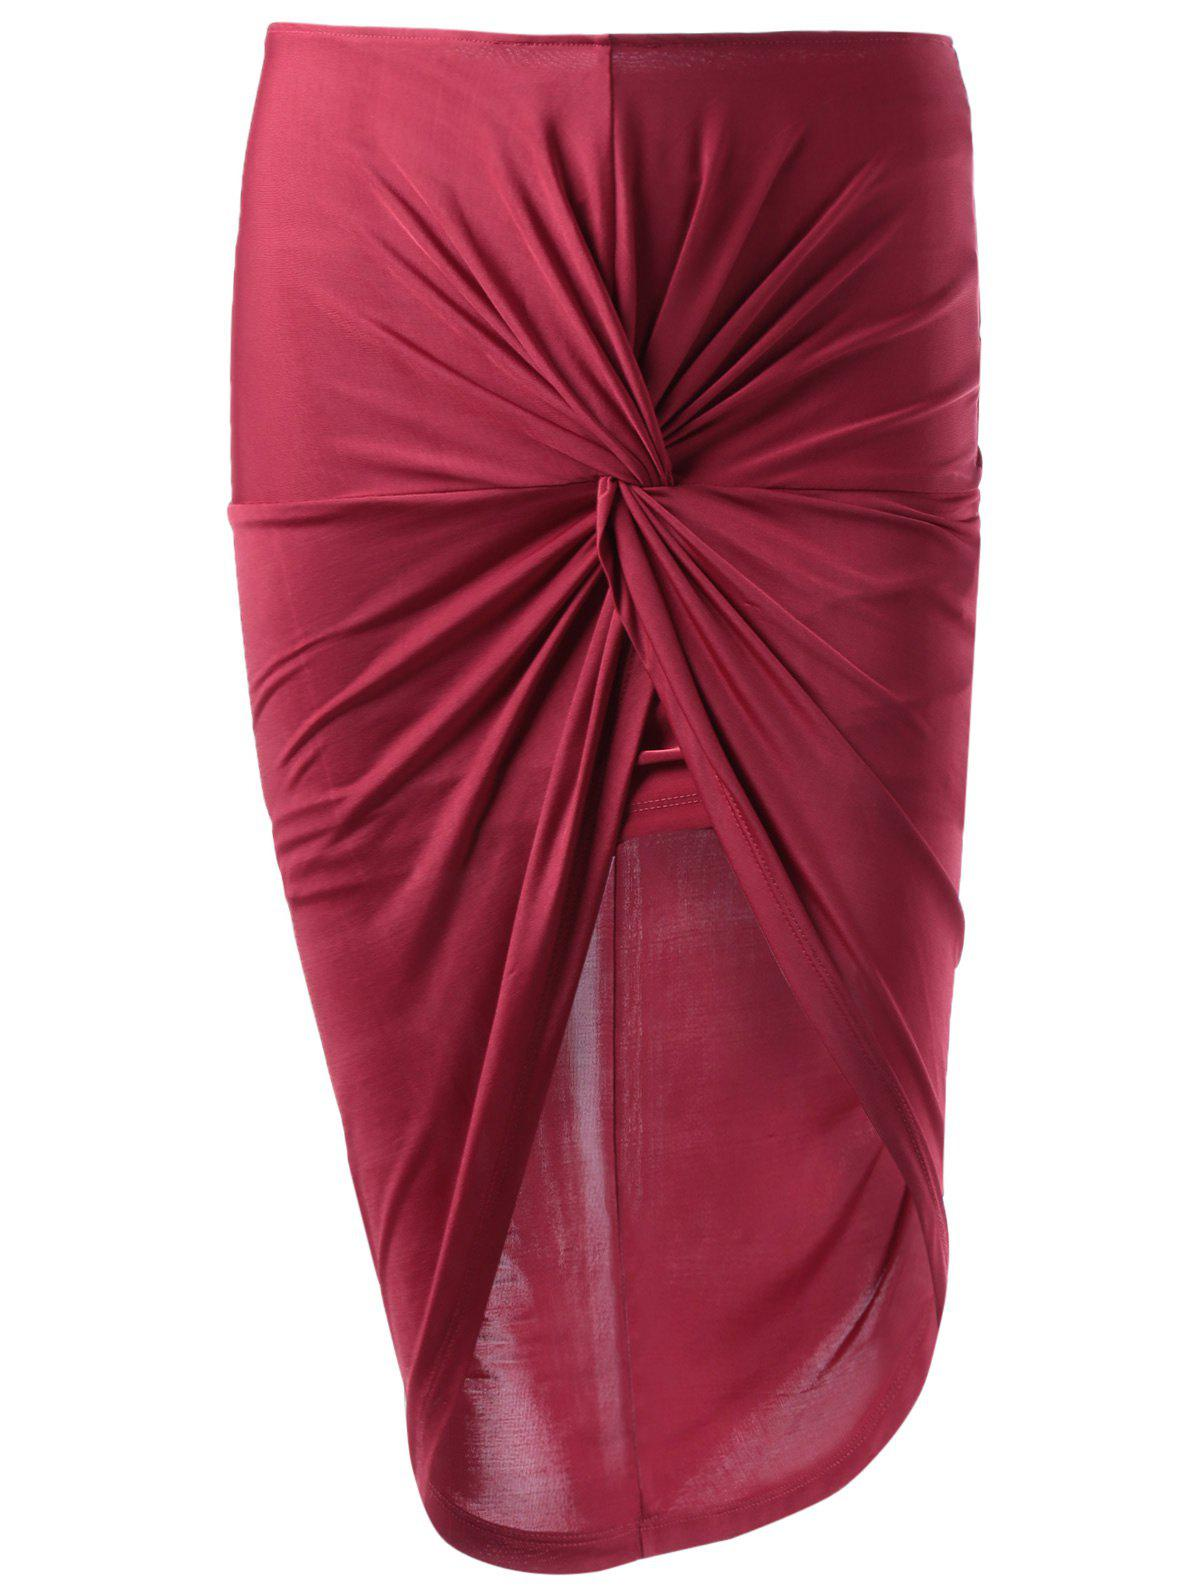 Fashionable Womens Fitted Symmetry High Rise SkirtWomen<br><br><br>Size: XL<br>Color: CERISE